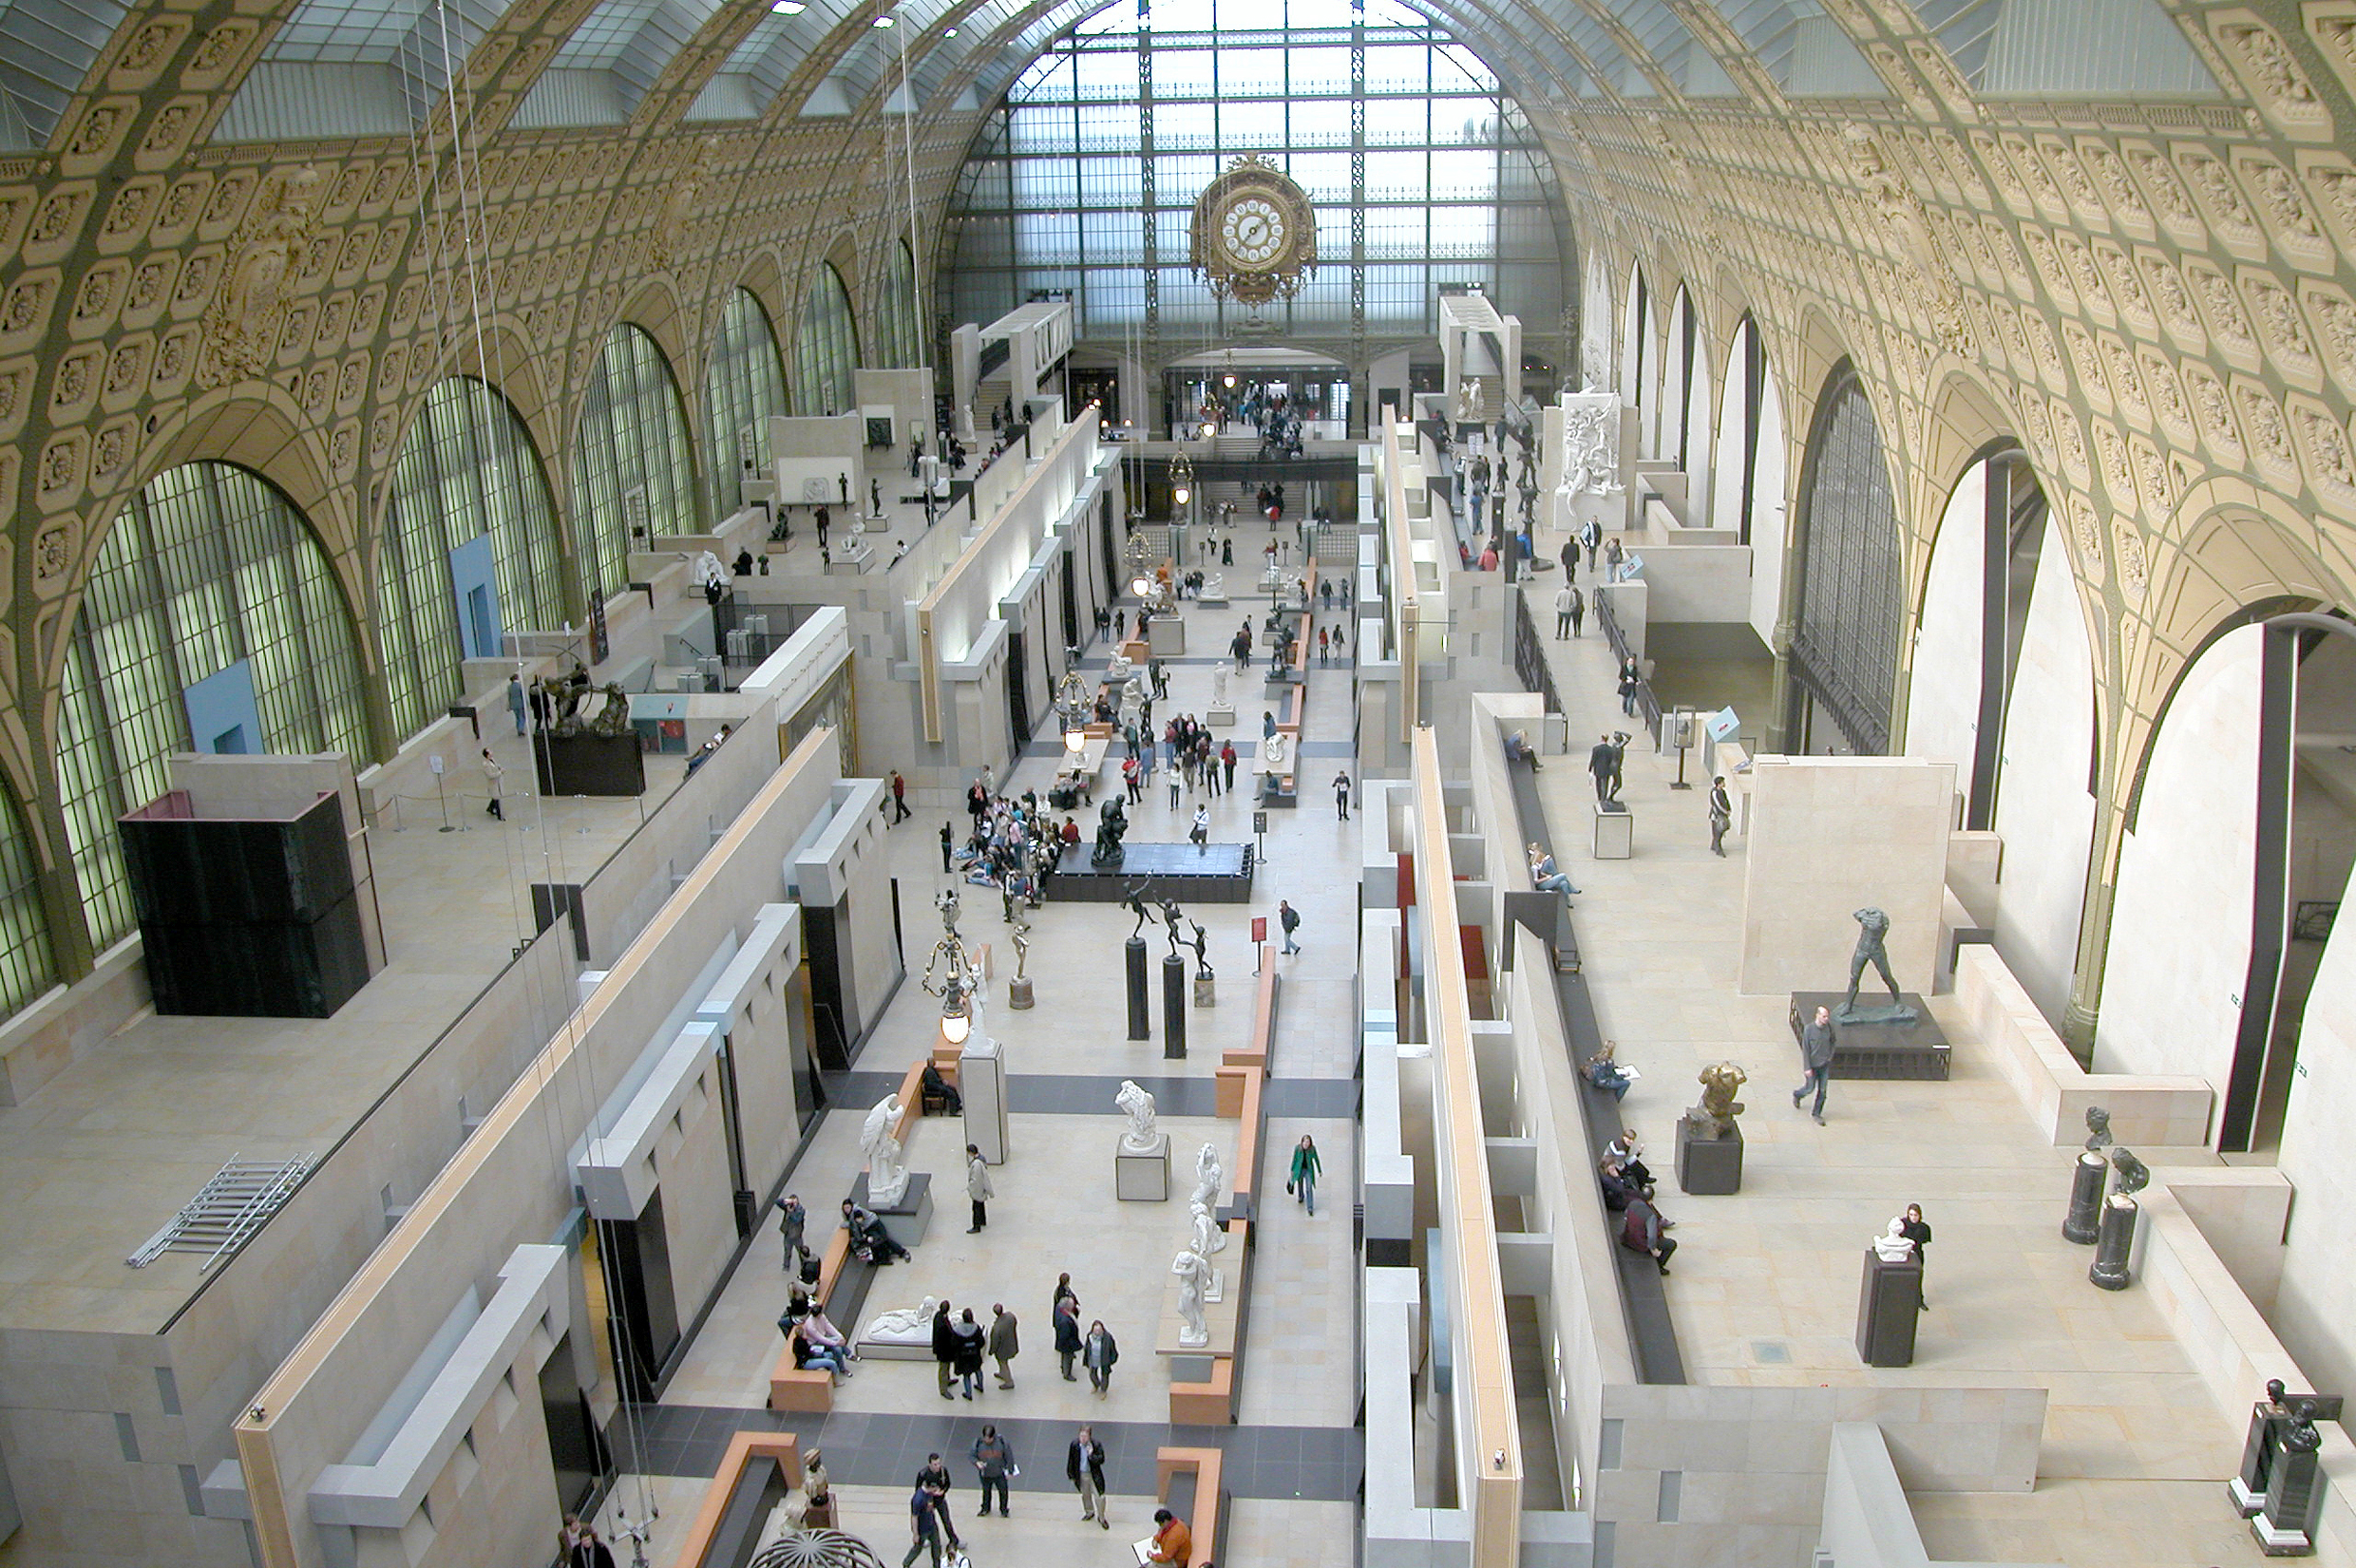 http://www.musee-orsay.fr/